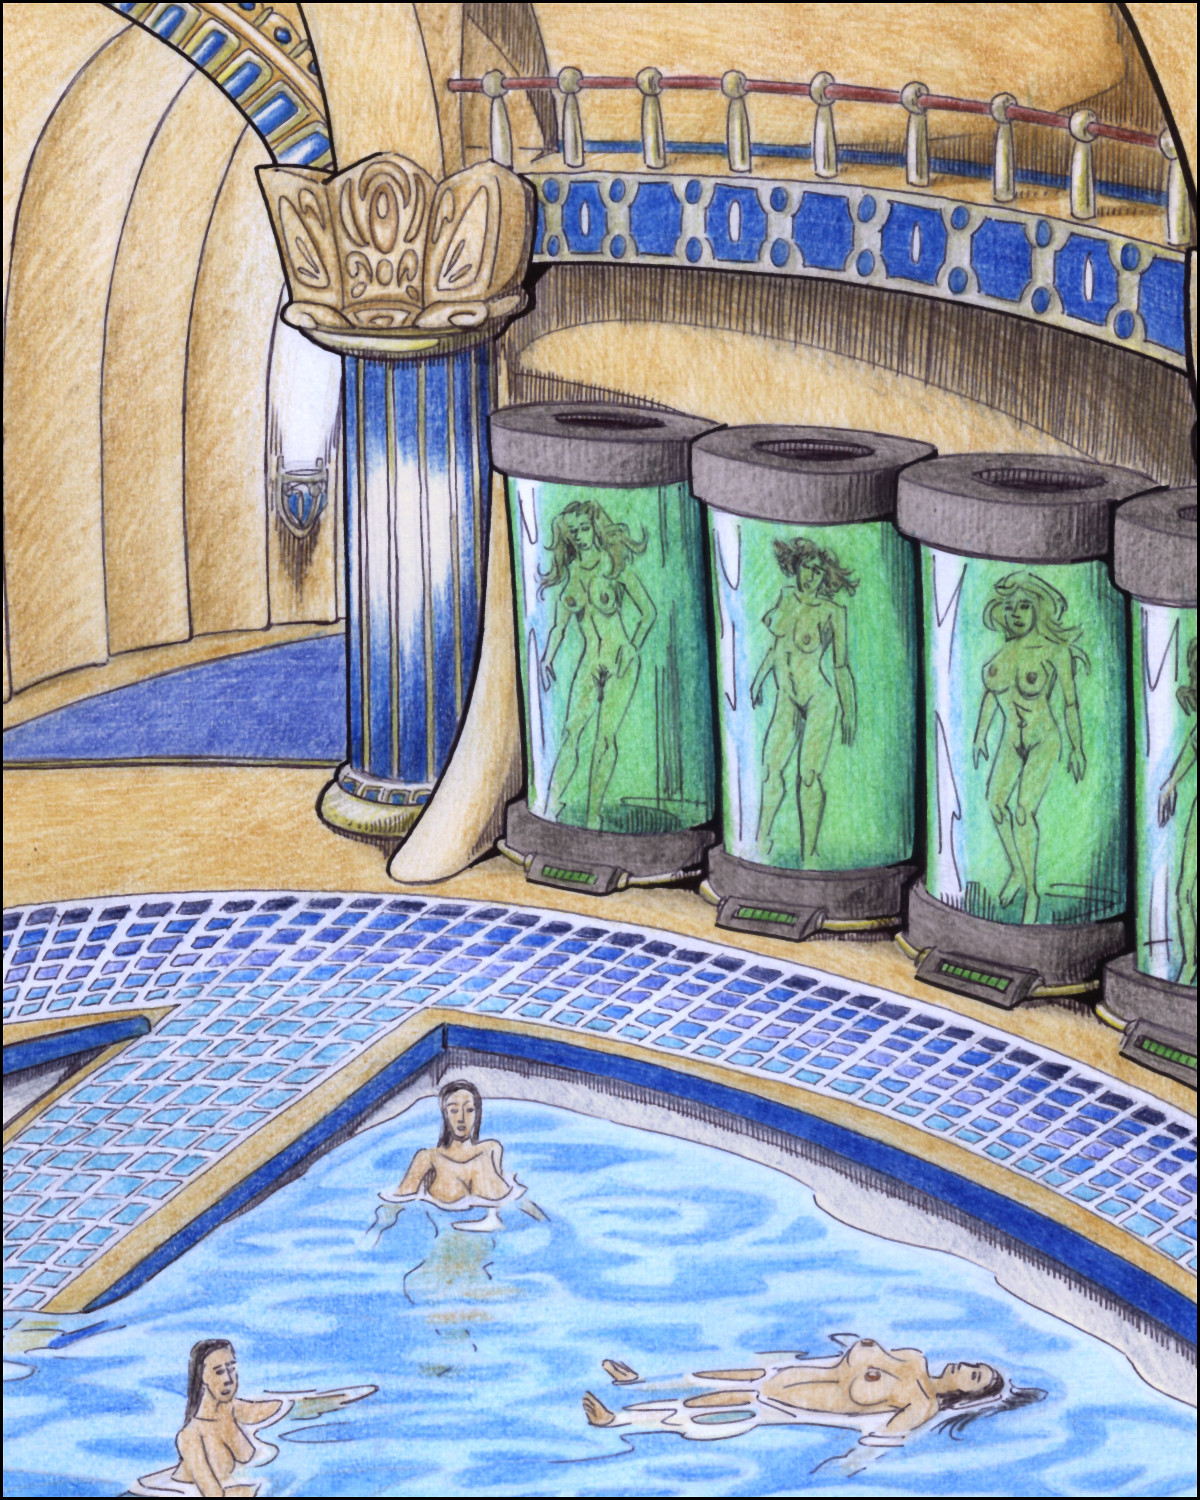 A room full of naked girls, some in tubes, some in a pool.